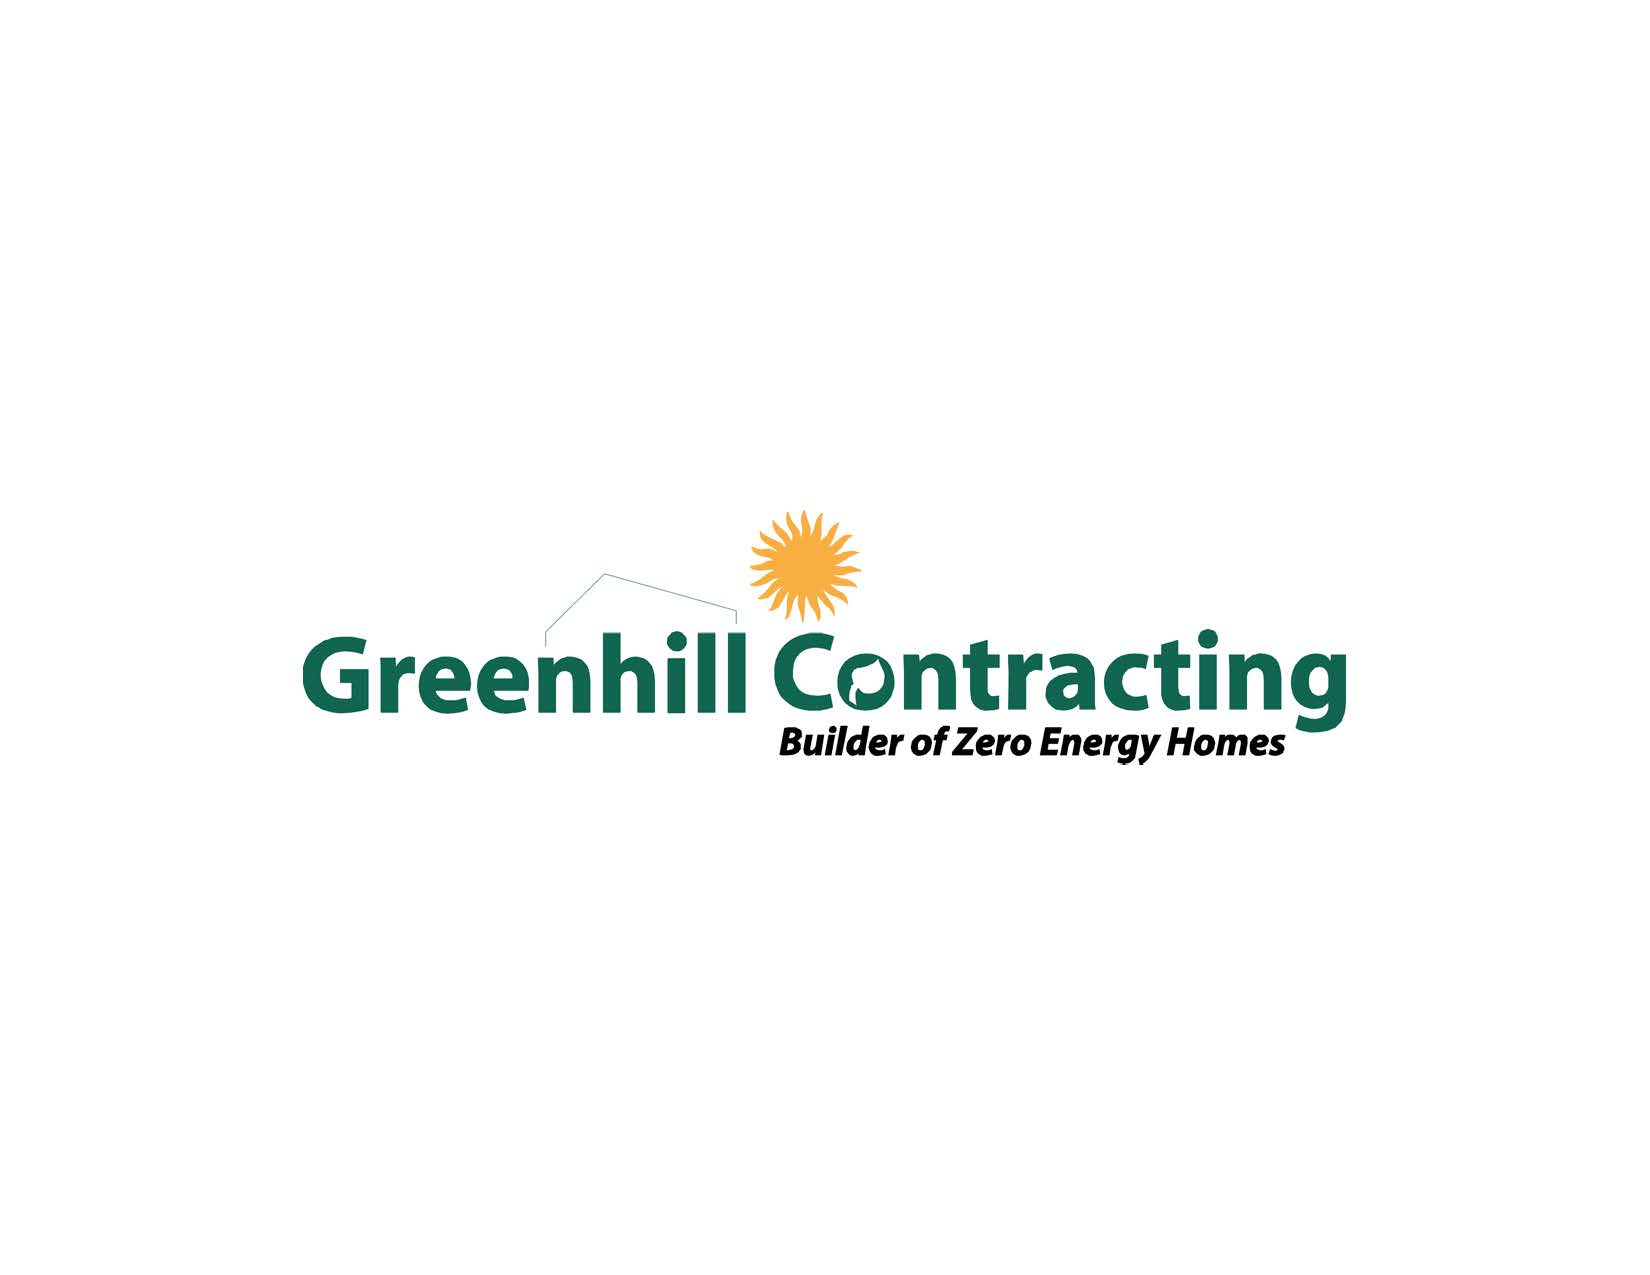 Greenhill Contracting Inc. company logo